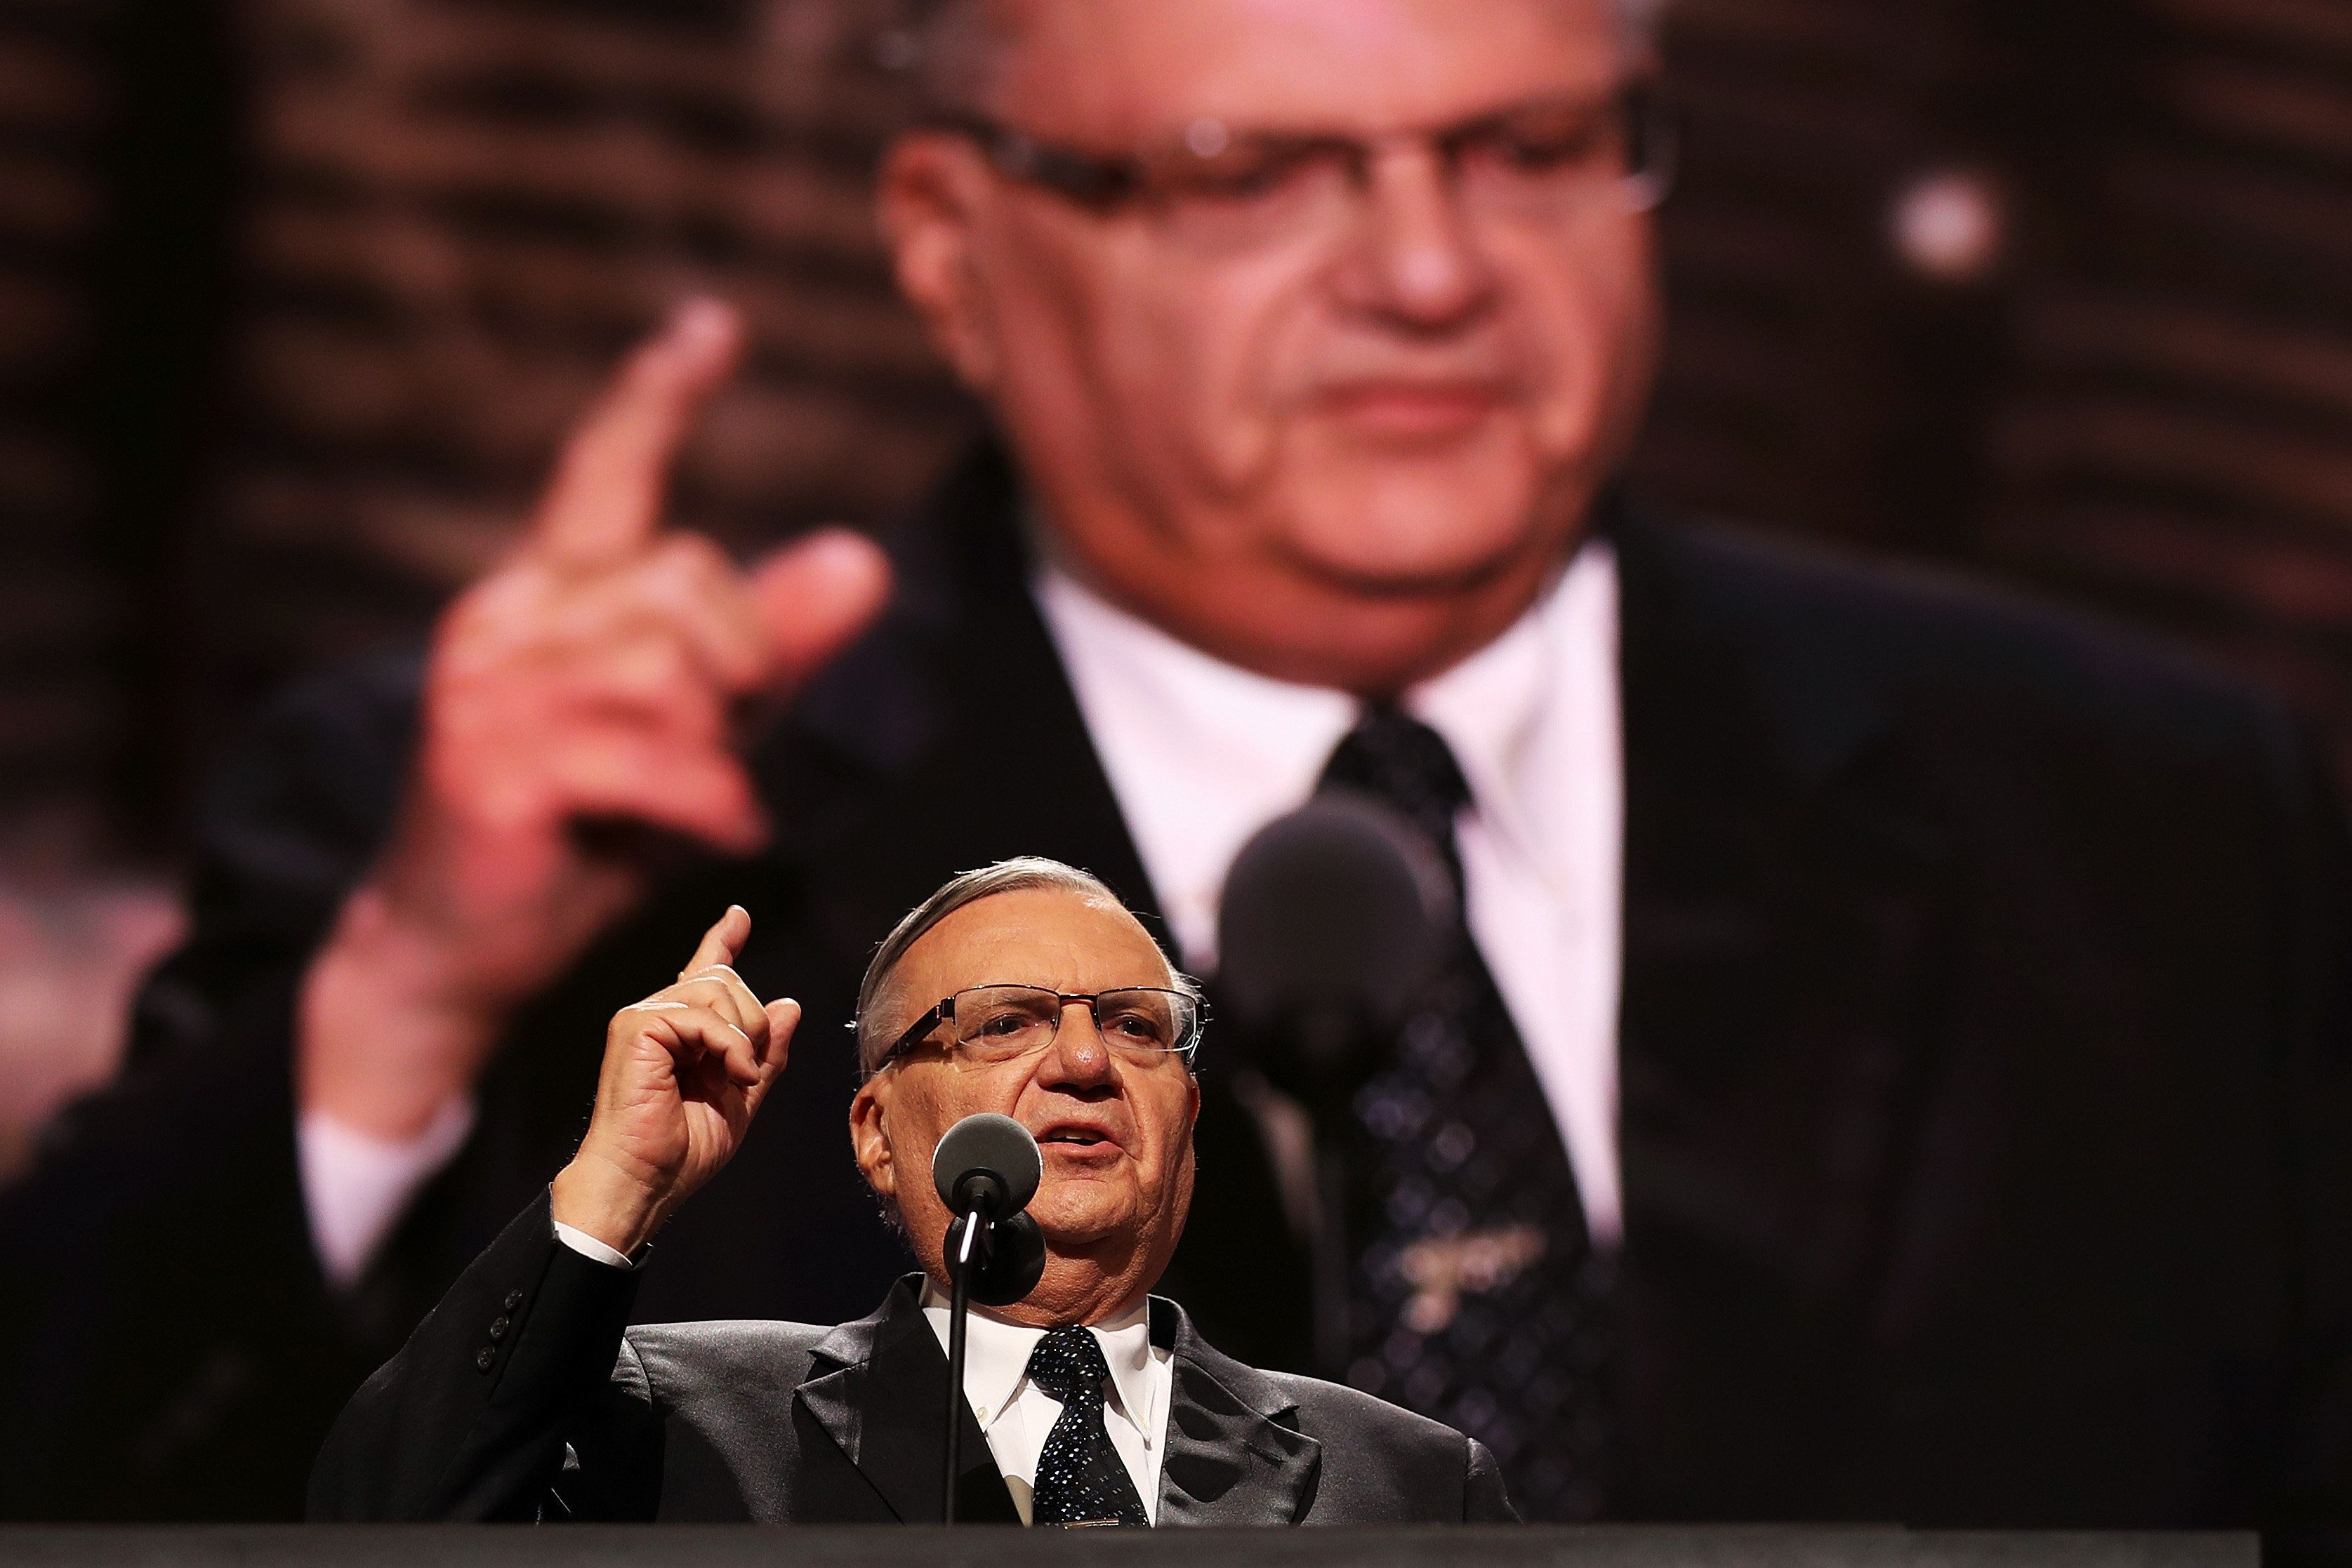 Arizona Senate candidate Arpaio 'unaware' he granted interview to anti-Semitic publication